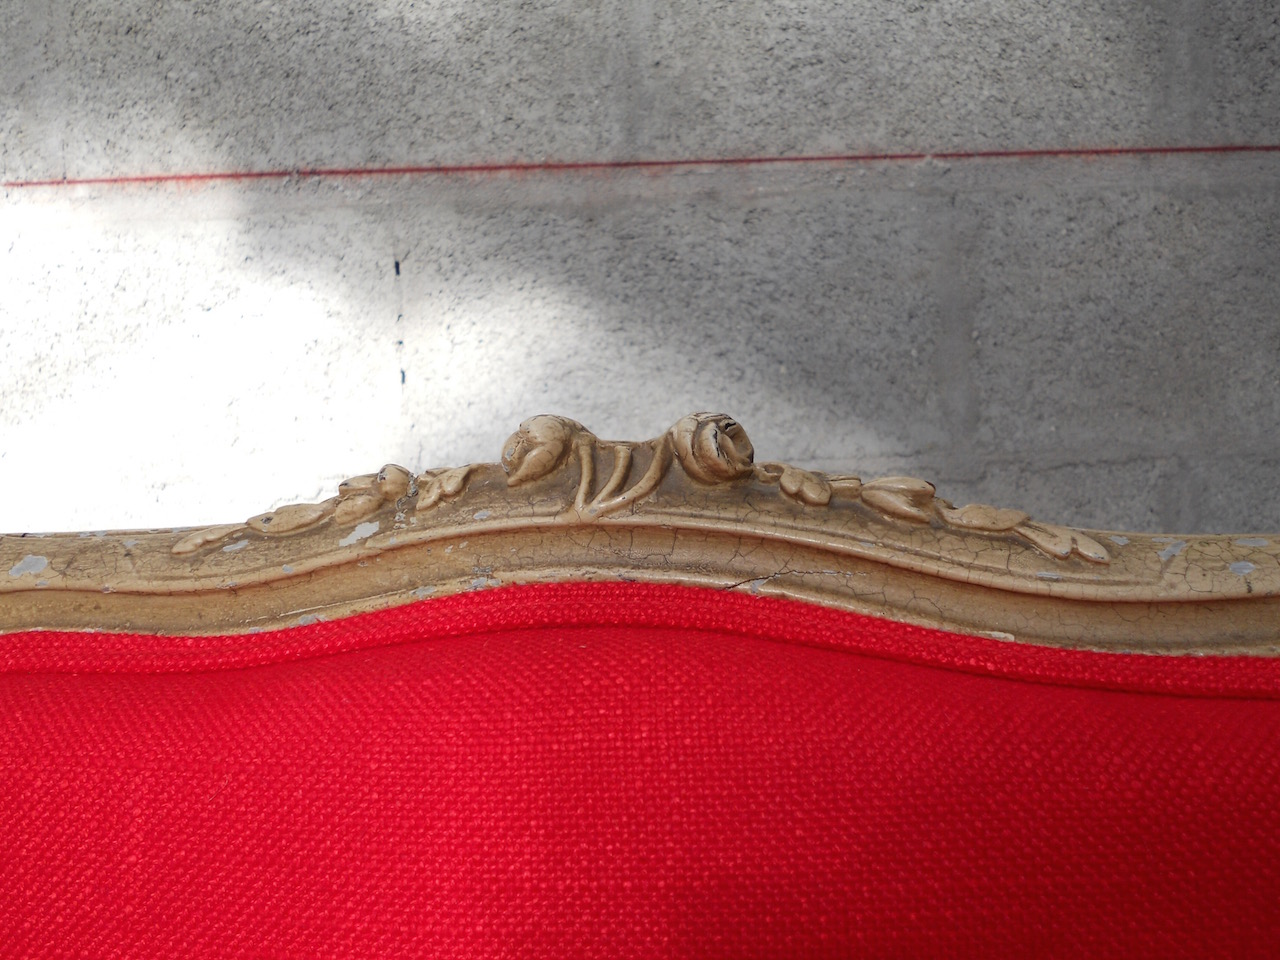 chaise-montespan-louis-XV-rouge-batz-sur-mer-la-baule-le-pouliguen-tapissier-couture-decoration-creation-tissu-design-tendance